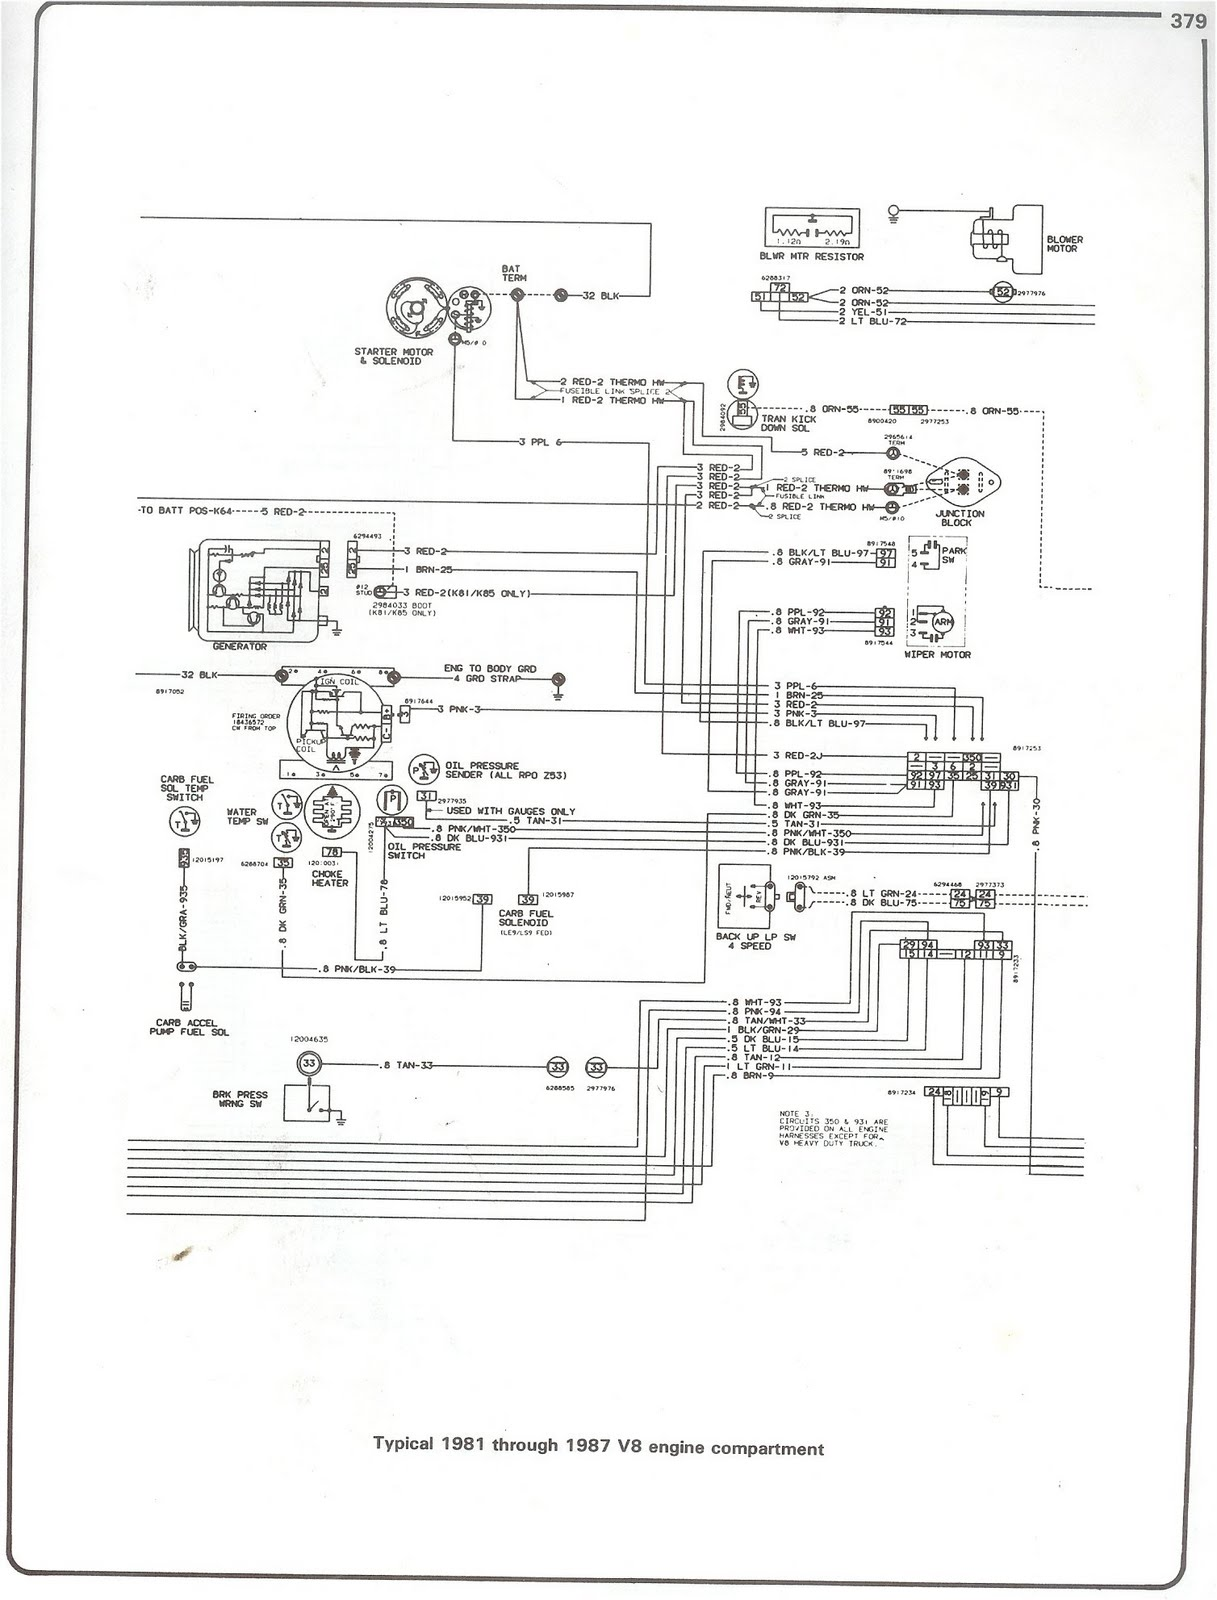 81 chevy c10 wiring diagram wiring diagram technicals 81 gmc truck radio wiring diagram [ 1217 x 1600 Pixel ]